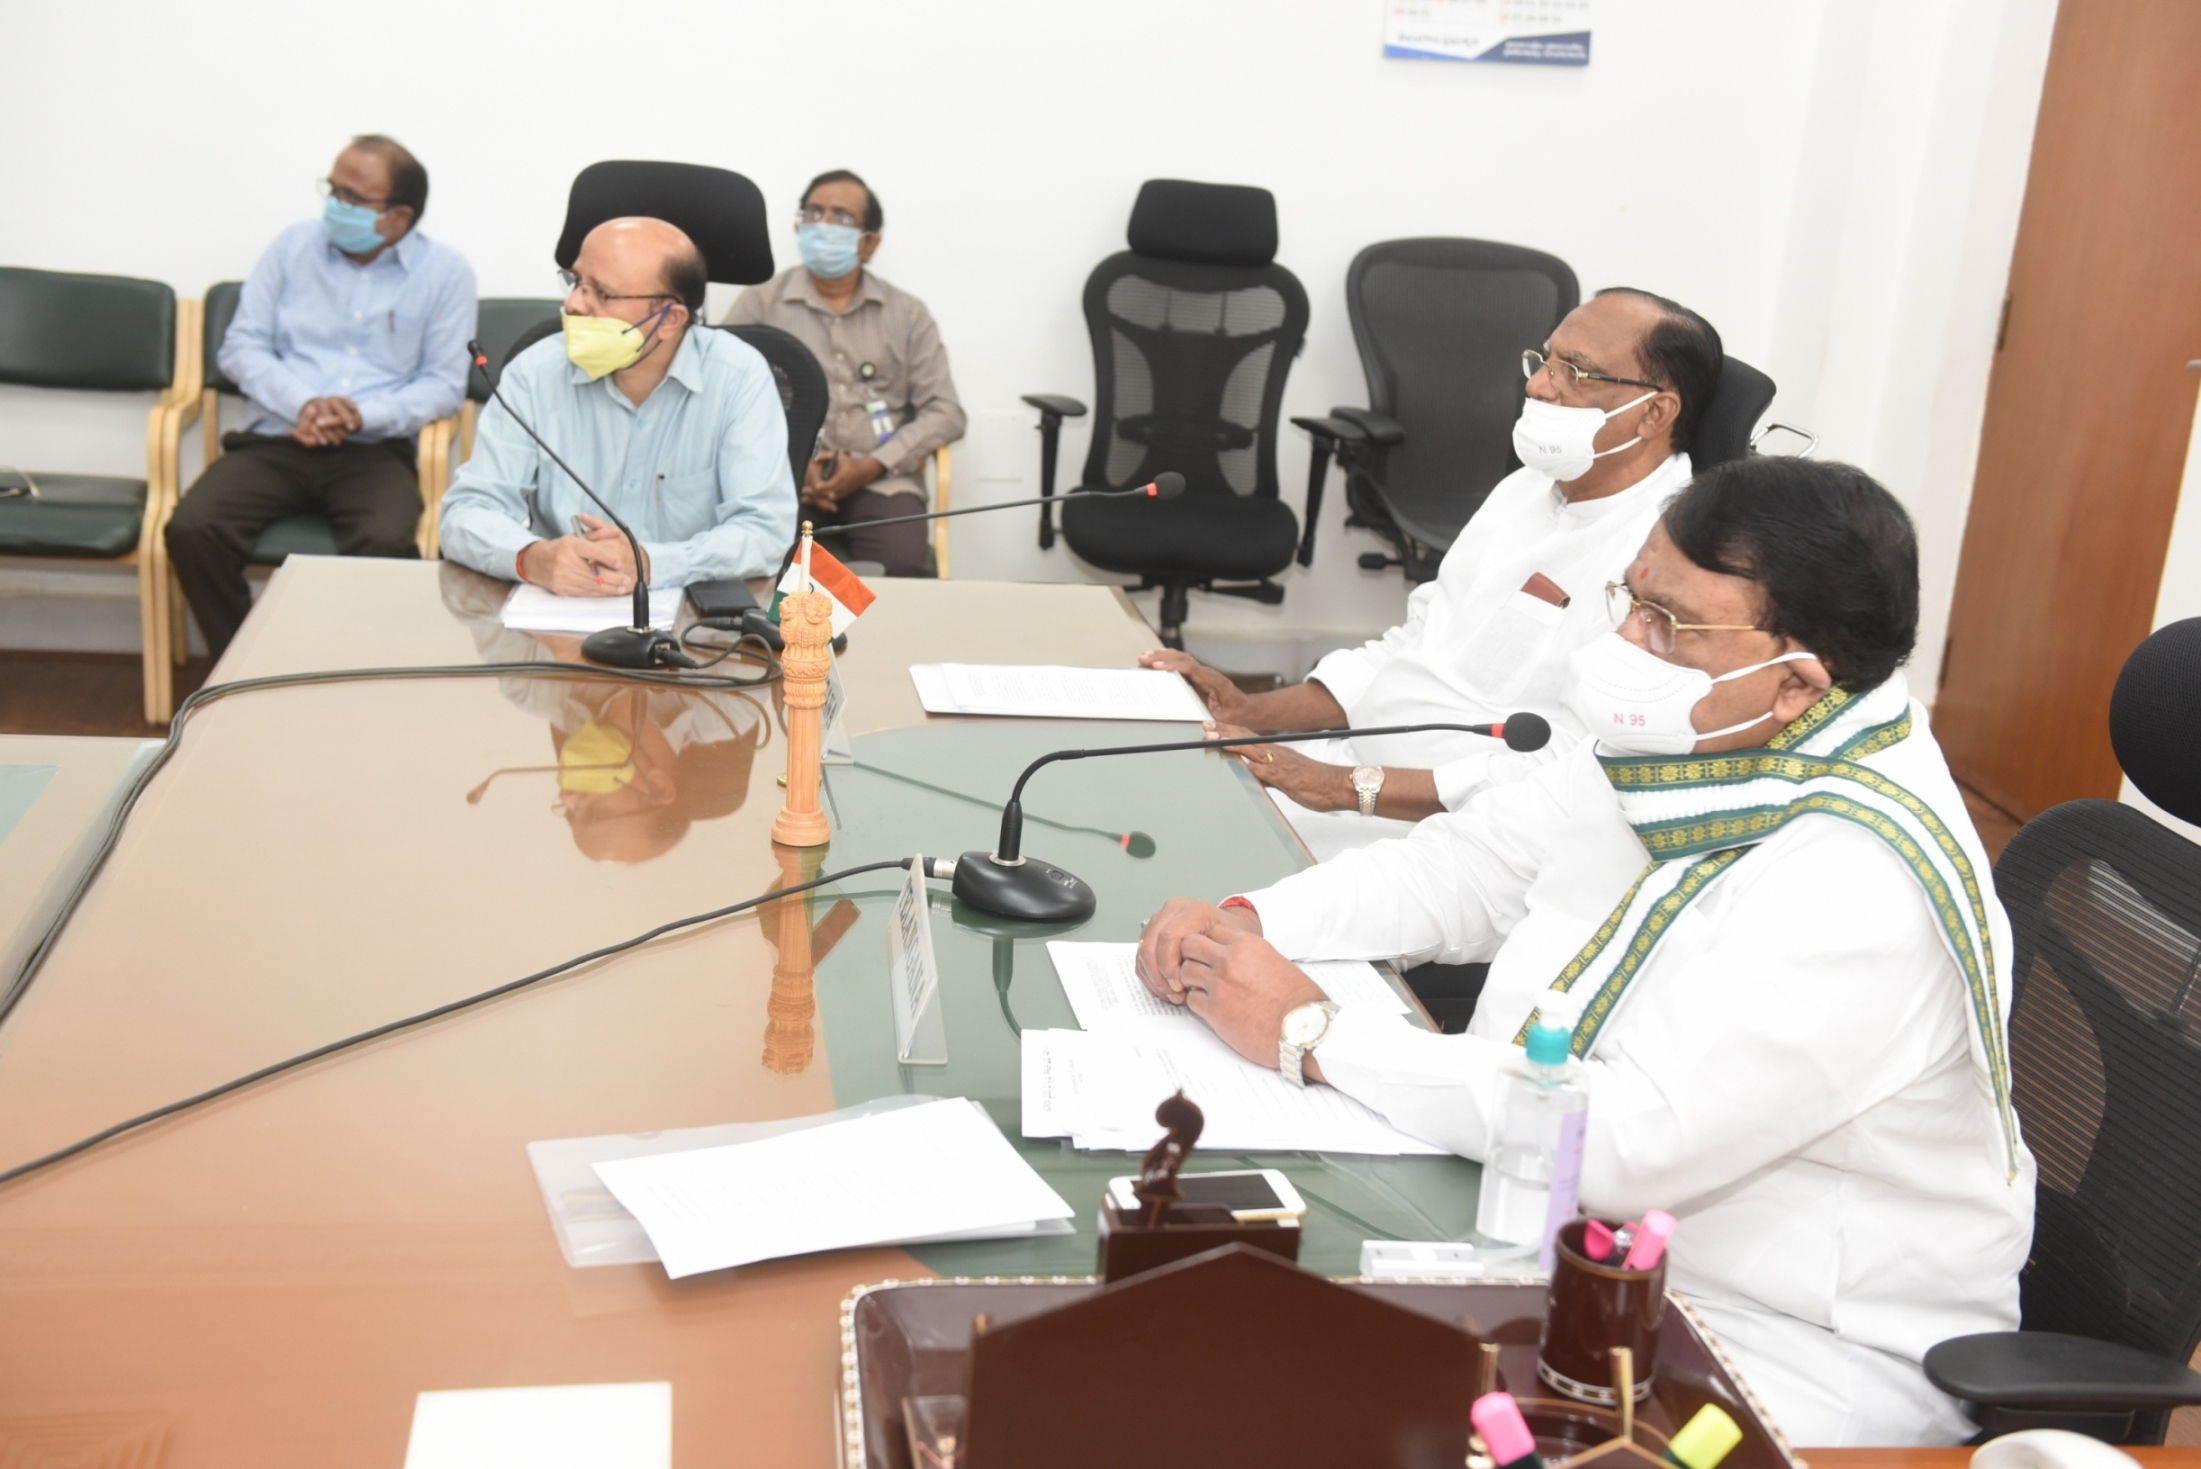 https://legislation.telanganalegislature.org.in//PreviewPage.tsl?filePath=basePath&fileName=Gallery/Presiding Officers of Telangana Legislature Video Conference with Honourable Speaker, Lok Sabha on 21.04.2020./4.JPG